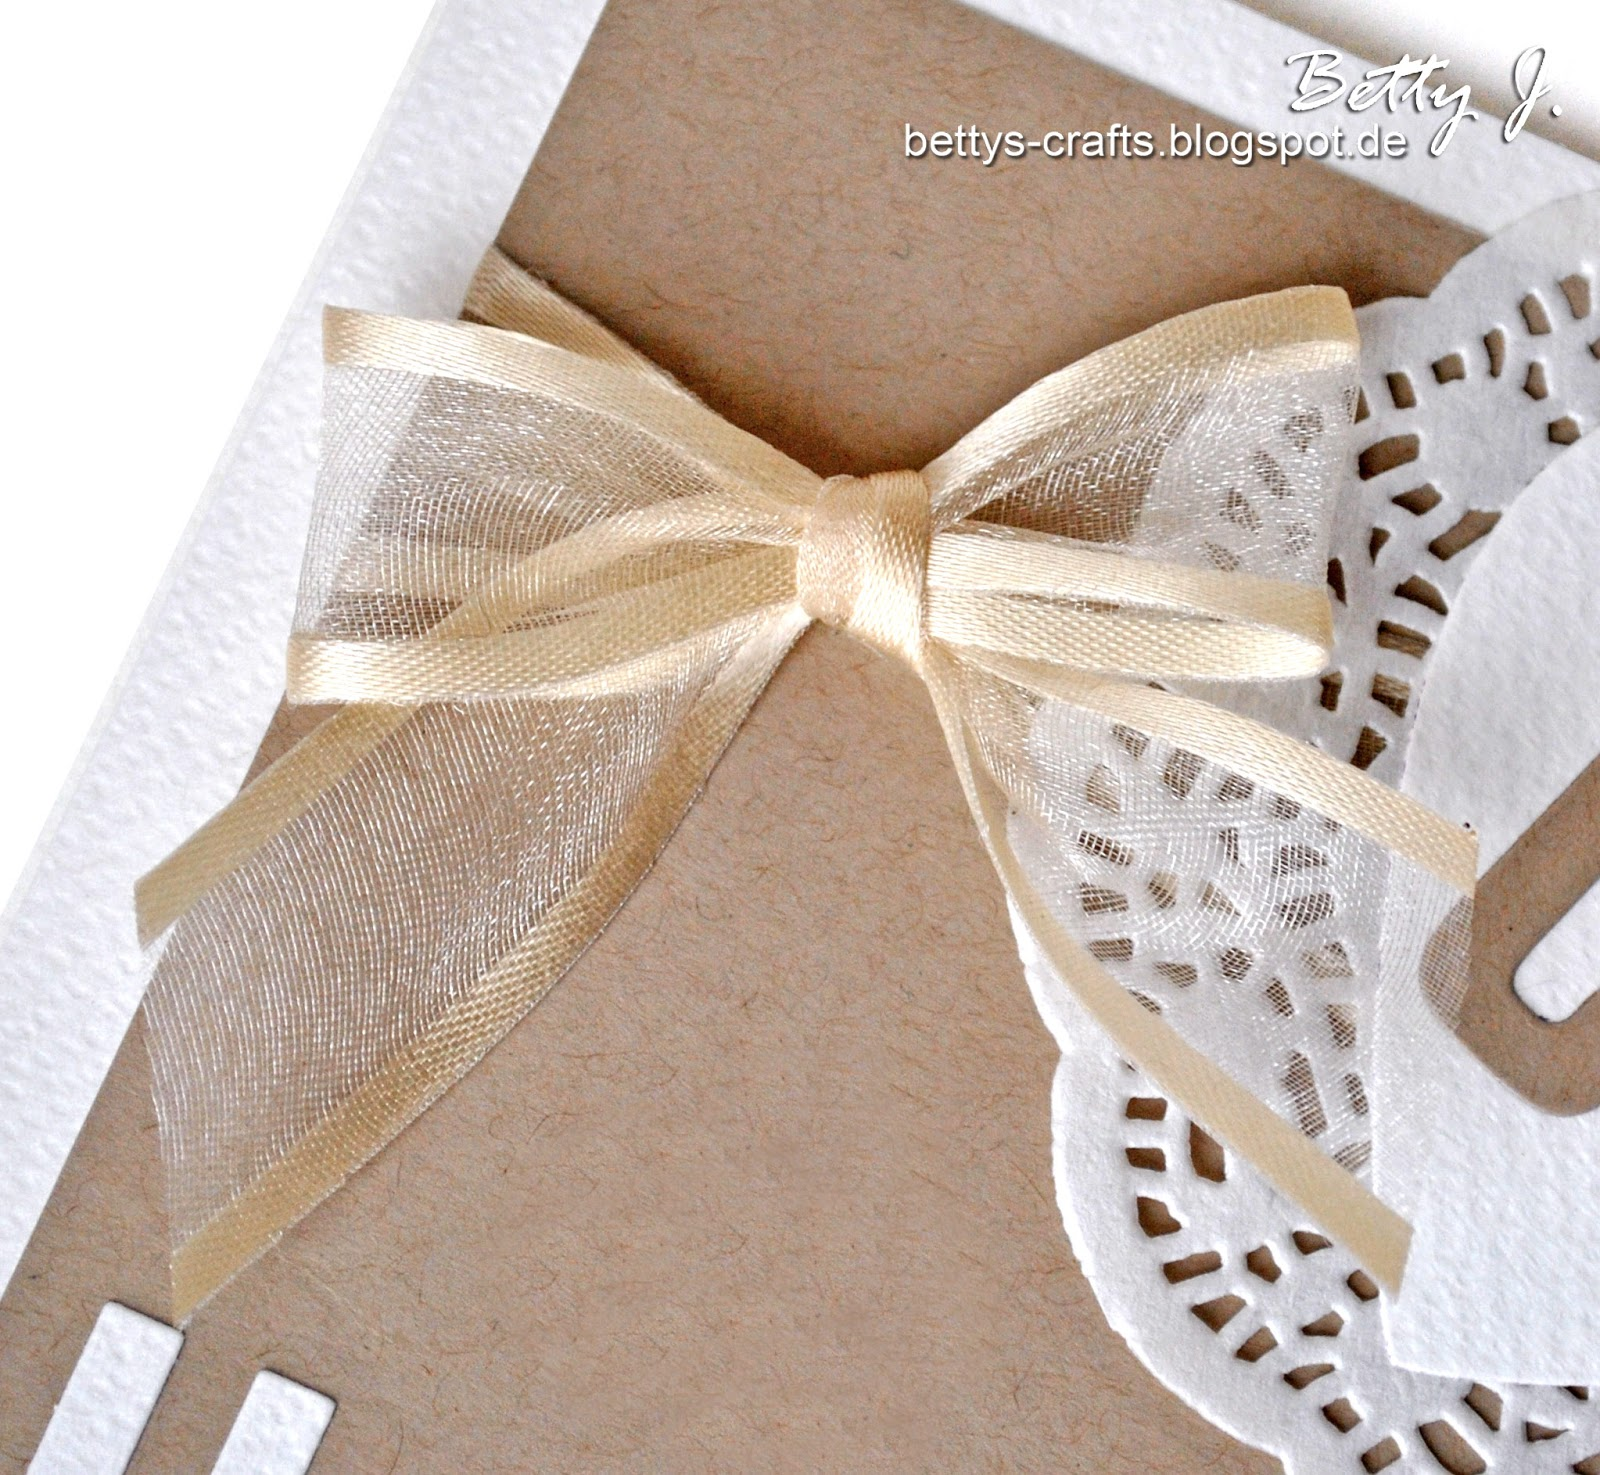 bettys crafts wie binde ich eine schleife how to tie a bow. Black Bedroom Furniture Sets. Home Design Ideas